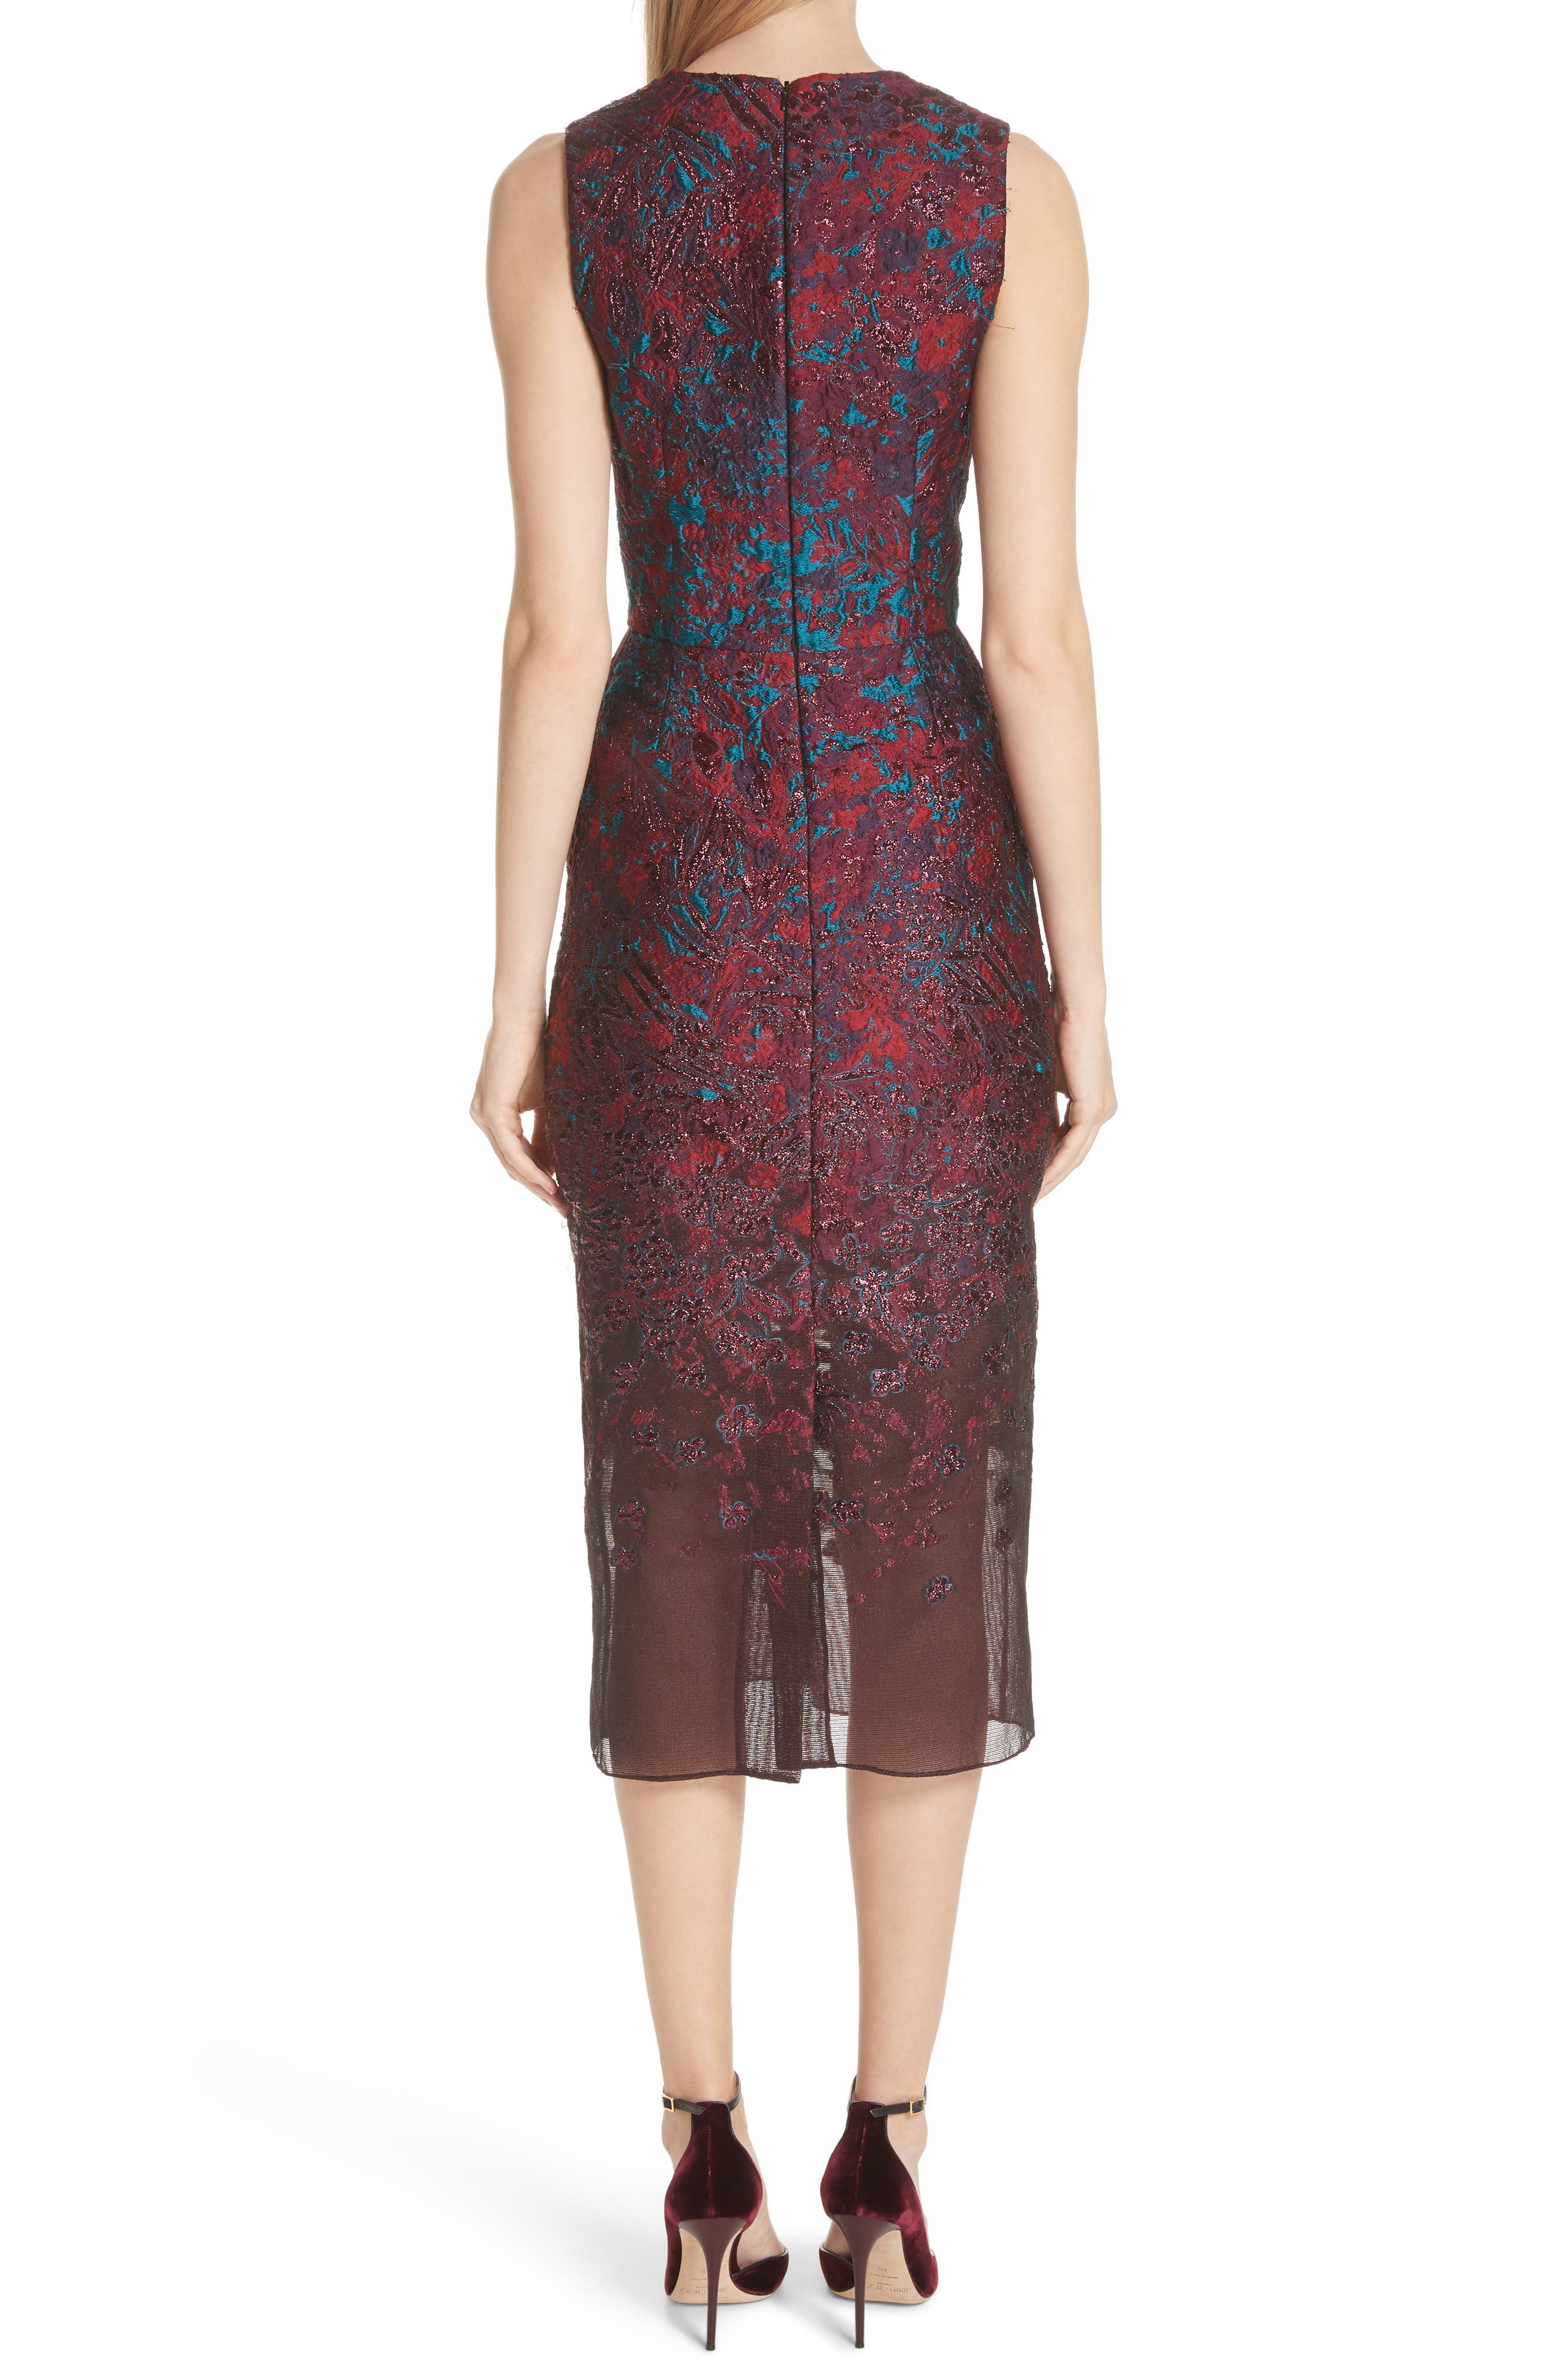 MALENE ODDERSHEDE BACH,                             May Cocktail Dress,                             Alternate thumbnail 2, color,                             600